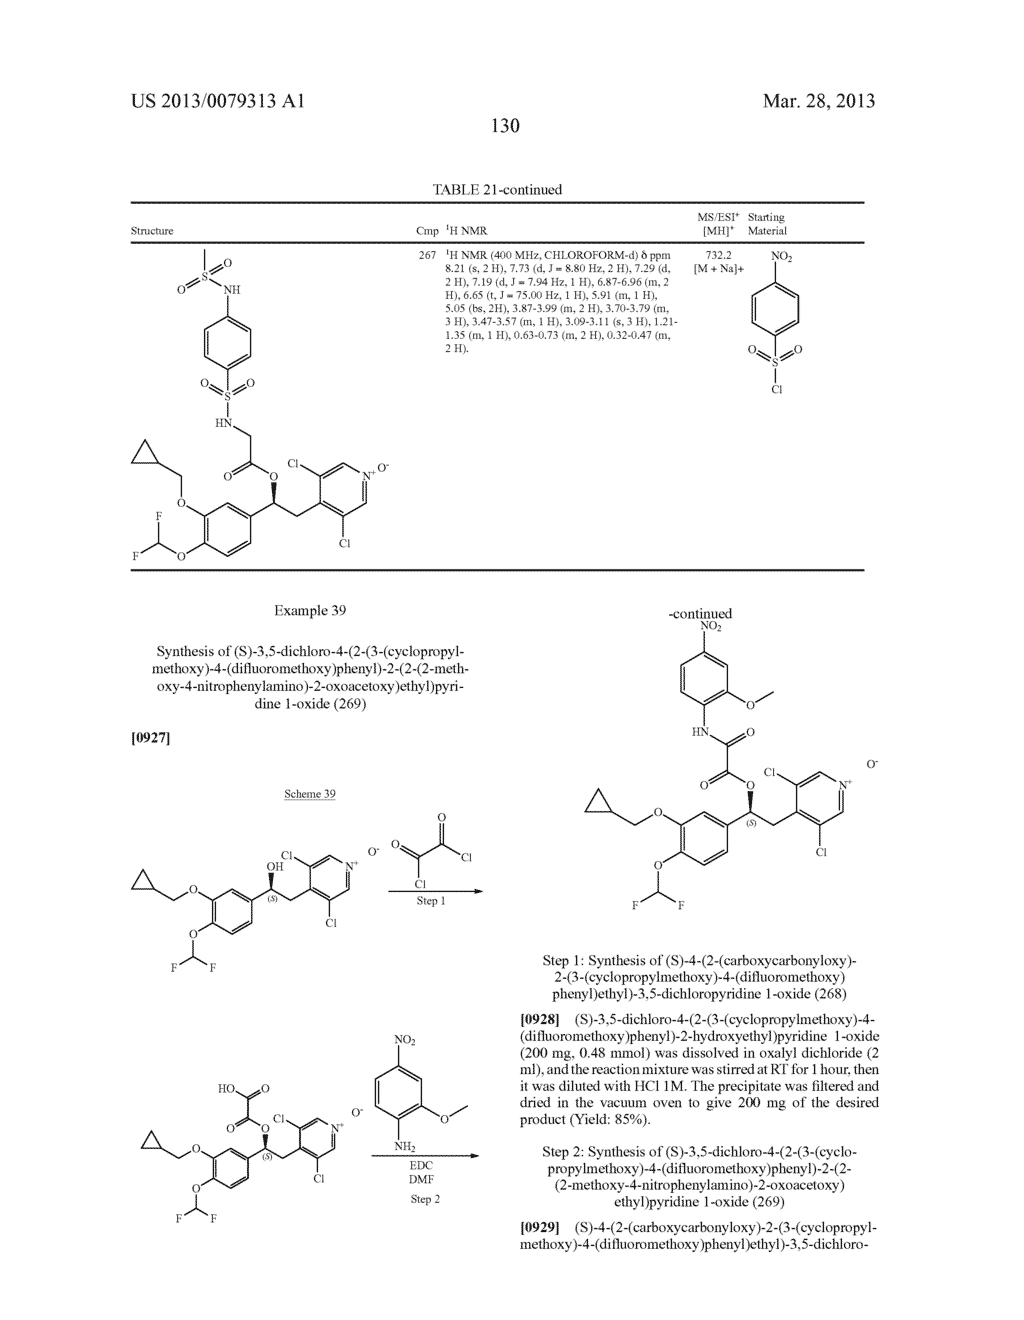 DERIVATIVES OF 1-PHENYL-2-PYRIDINYL ALKYL ALCOHOLS AS PHOSPHODIESTERASE     INHIBITORS - diagram, schematic, and image 131